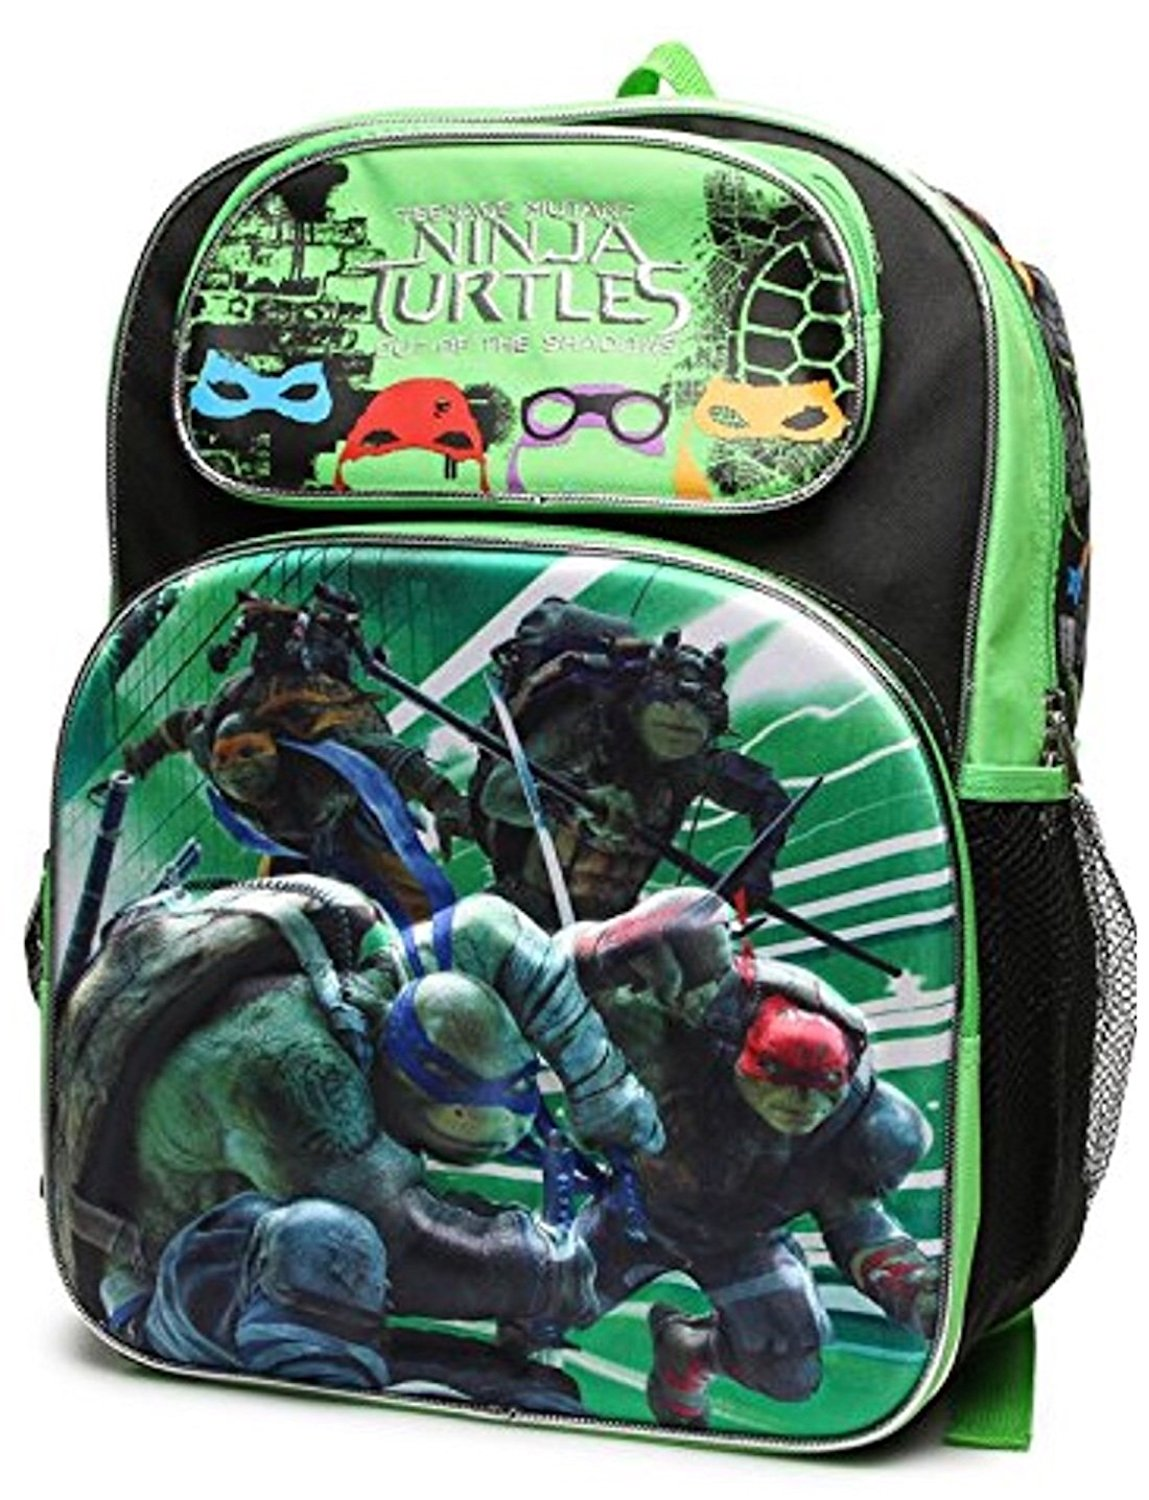 8d93d5d5a16 Get Quotations · Nickelodeon Teenage Mutant Ninja Turtle Kids 16 inch  Backpack - Children's Daycare School Travel Gift -